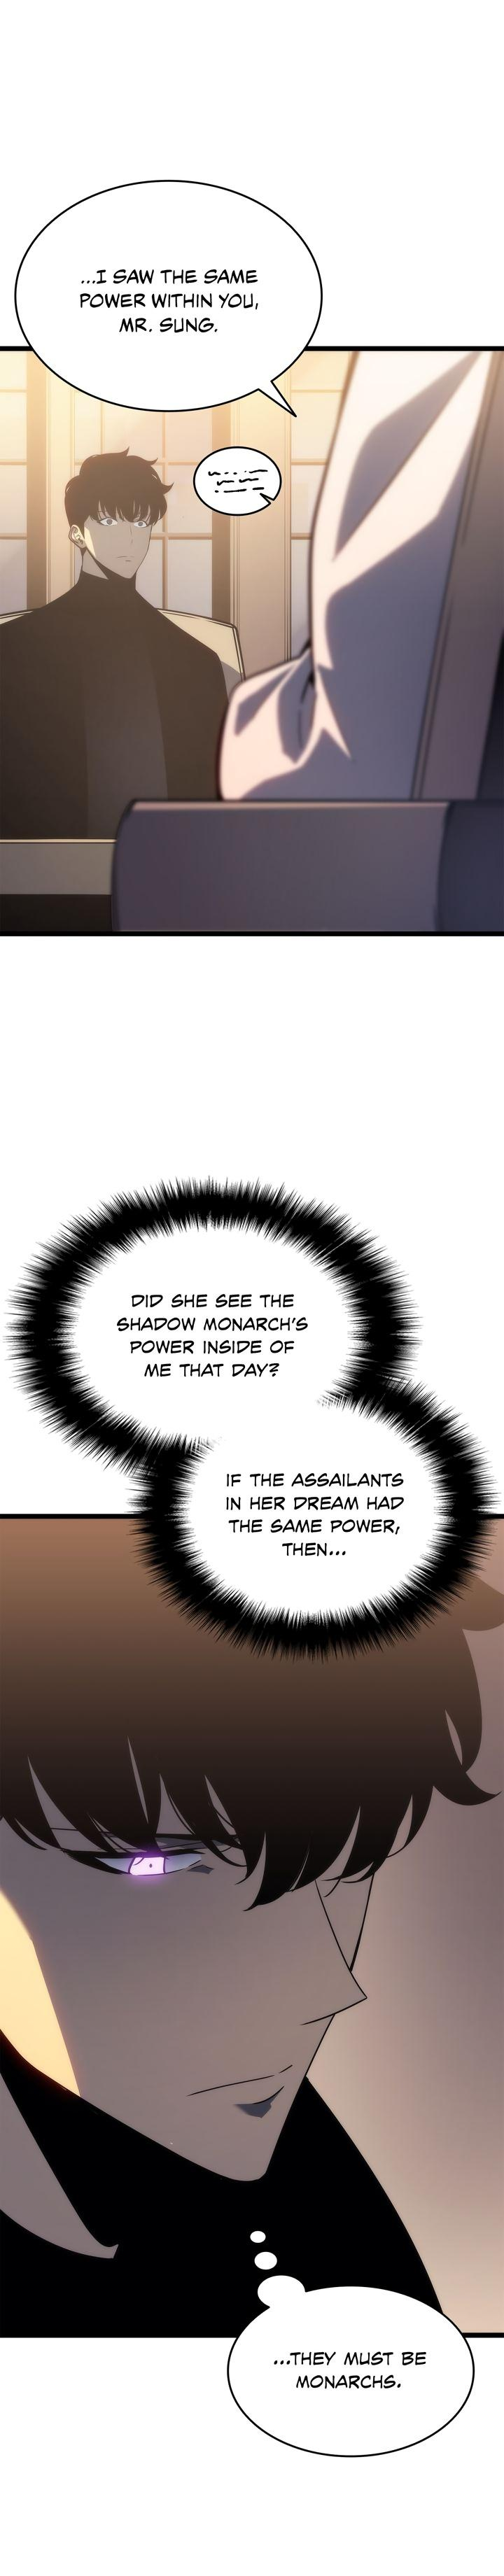 Solo Leveling Chapter 149 Page 14